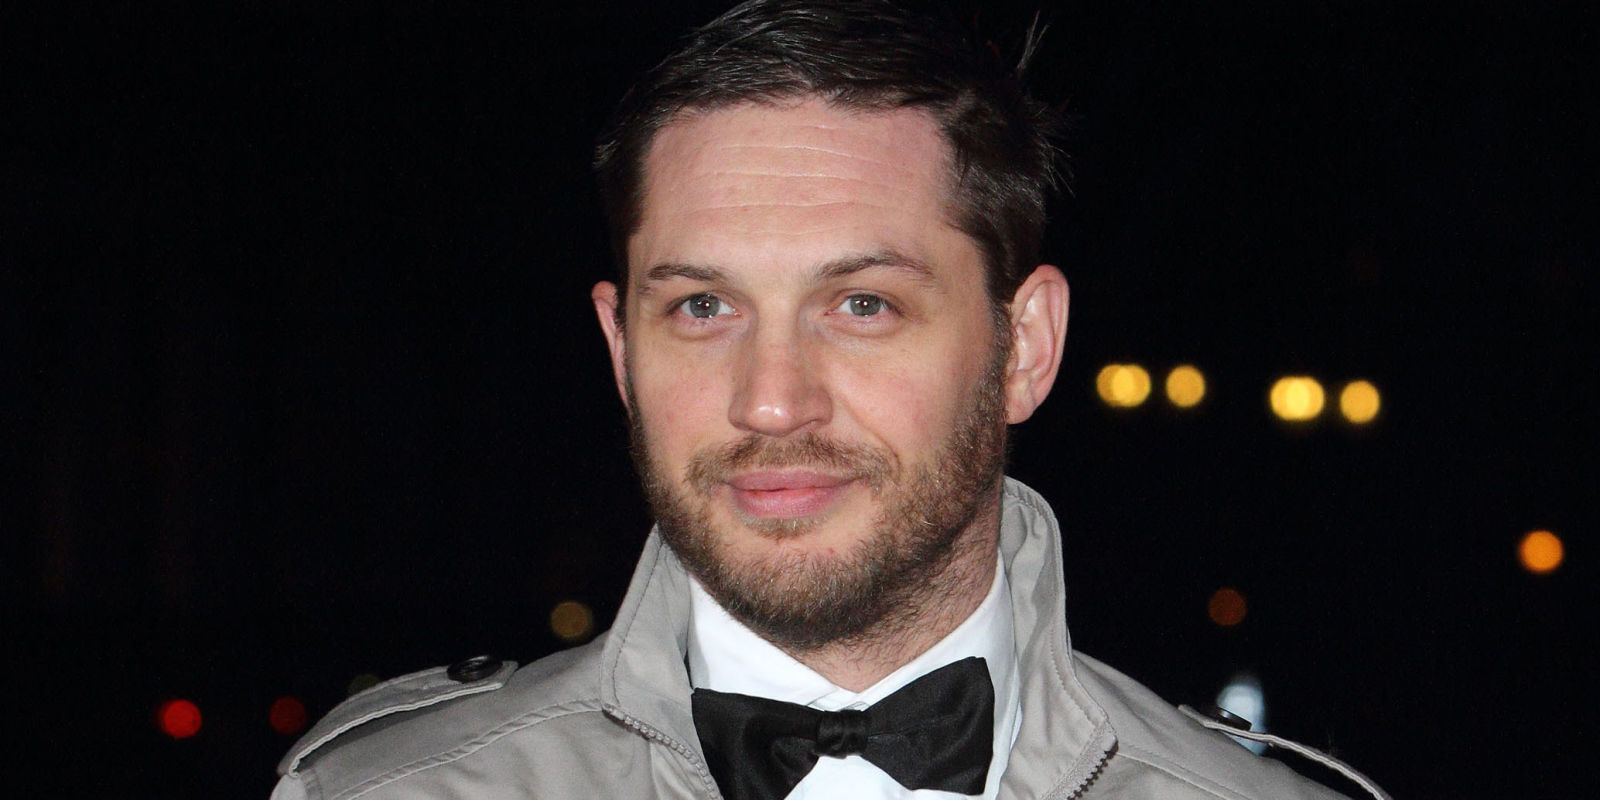 Tom Hardy To Star In Steven Knight's BBC Drama Taboo